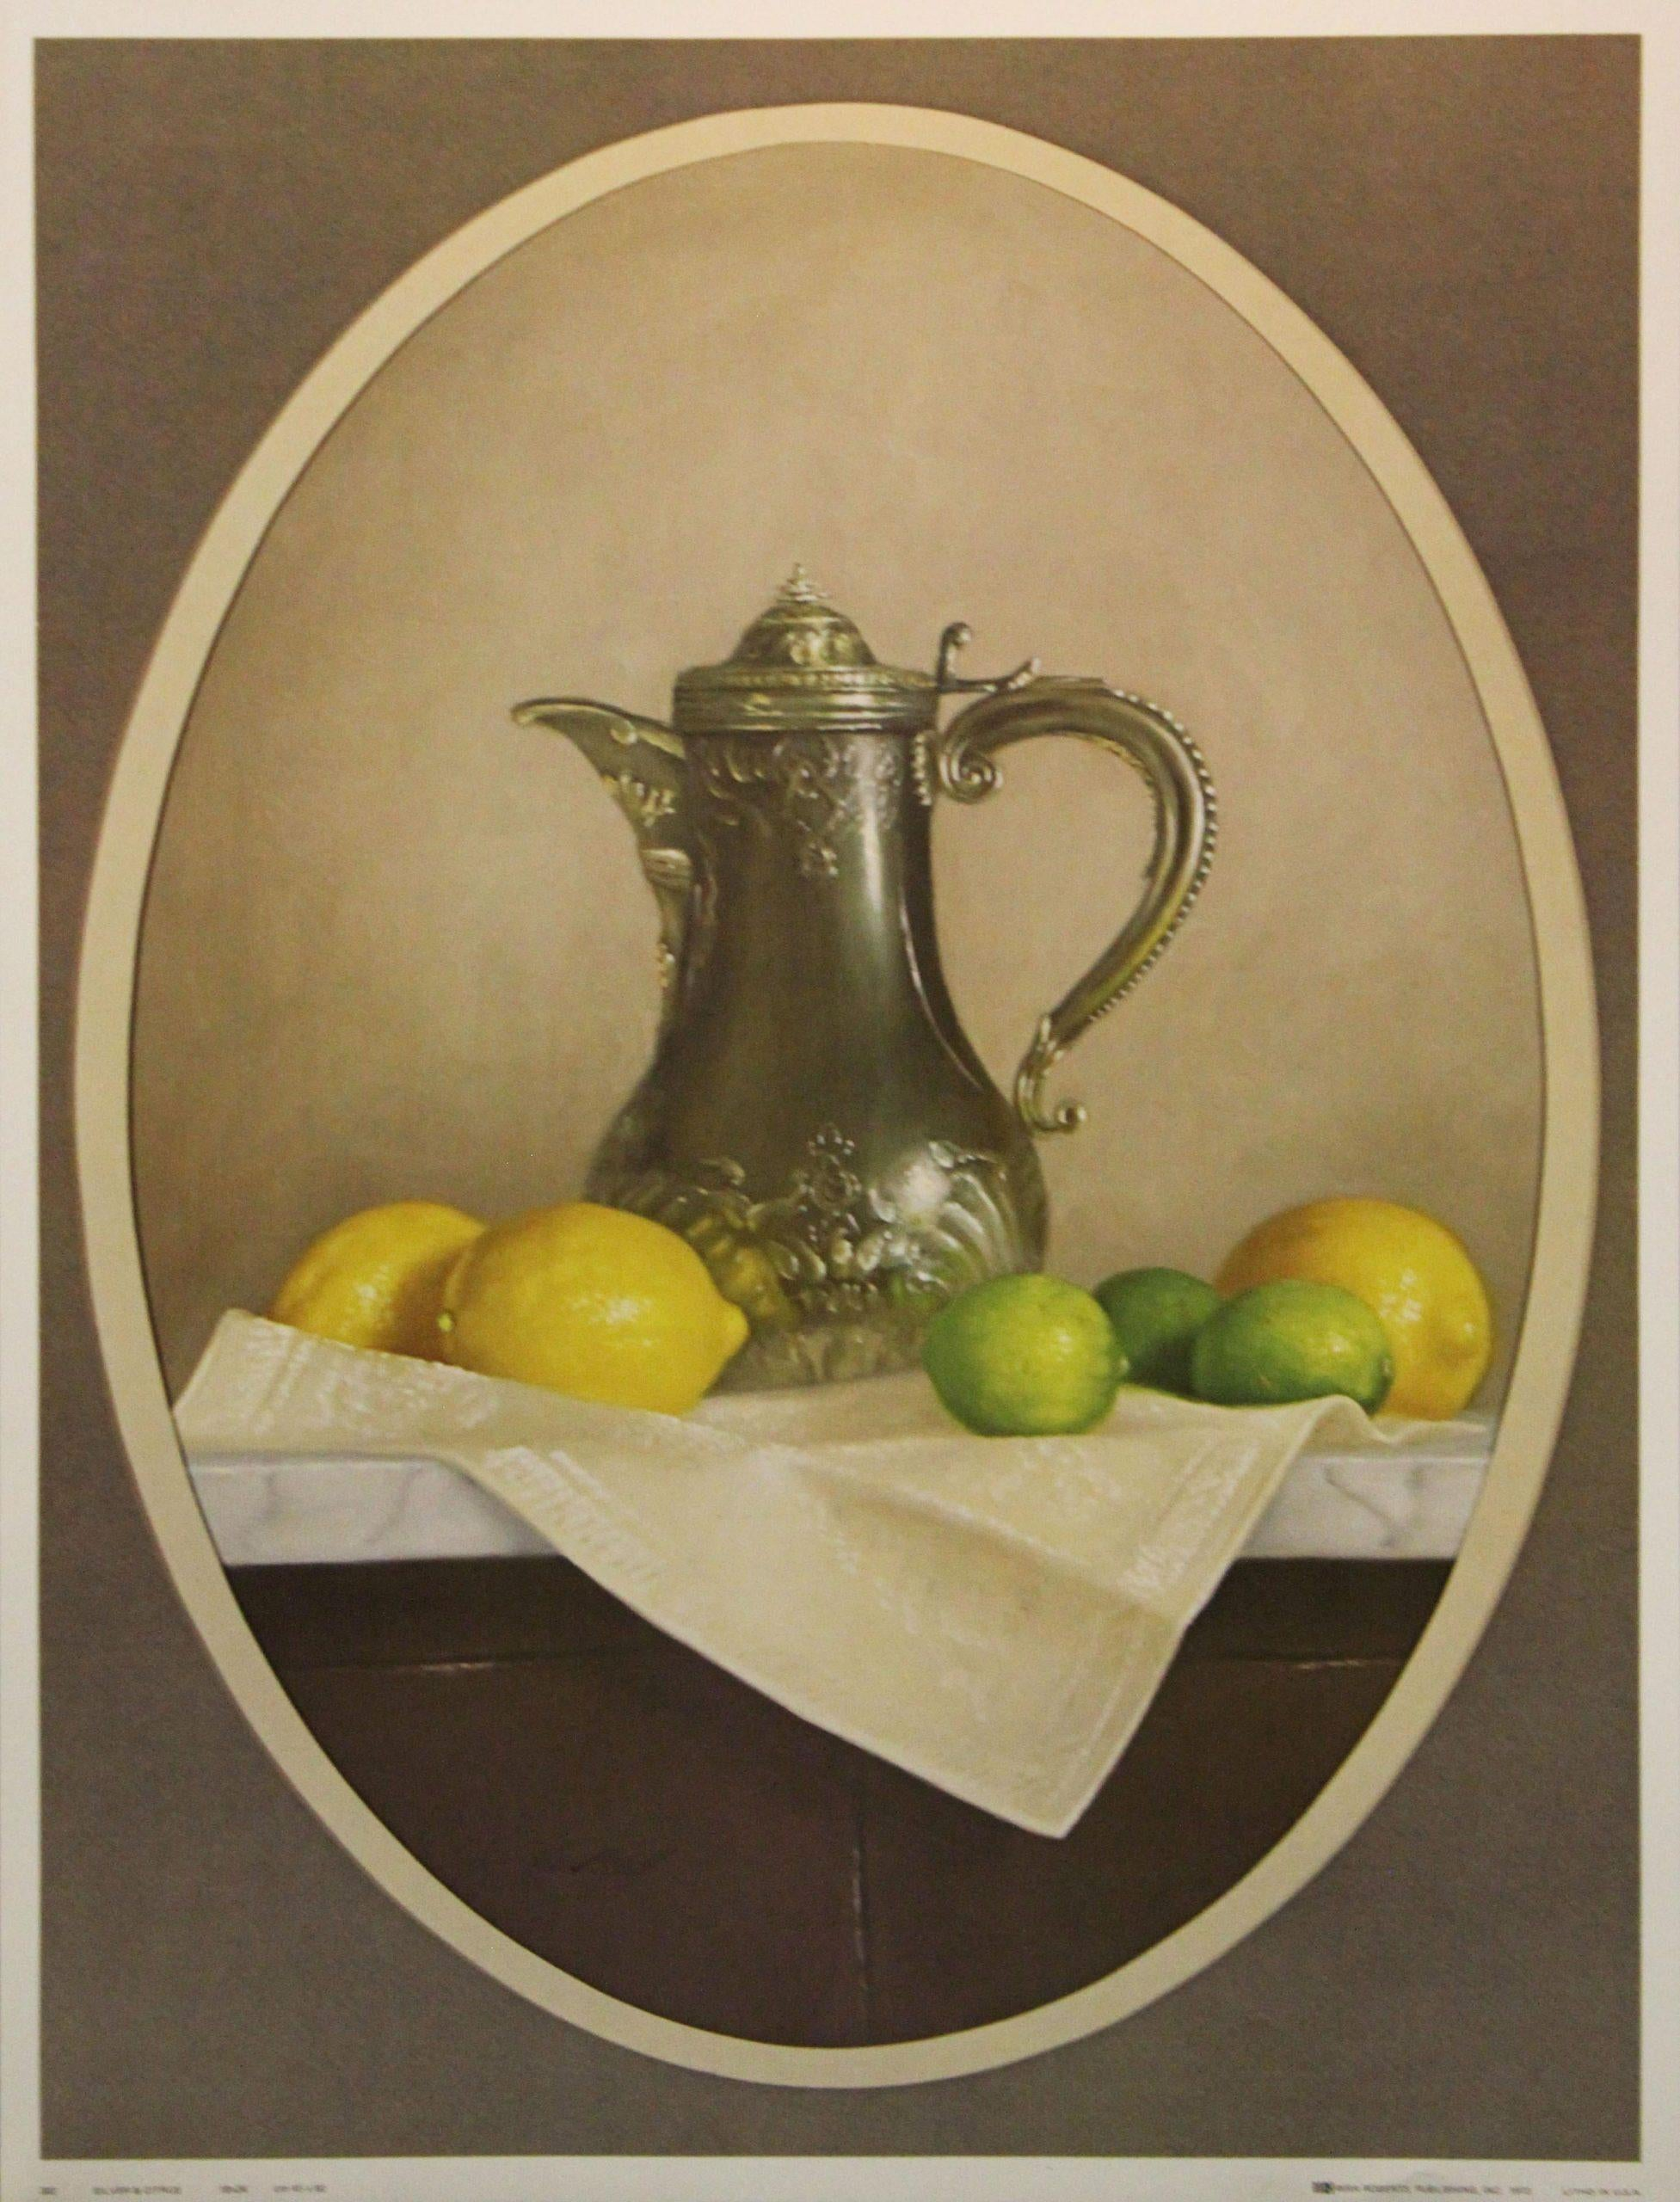 Silver & Citrus-Print. IRA Roberts Publishing, Inc. 1973. Lithographed in USA